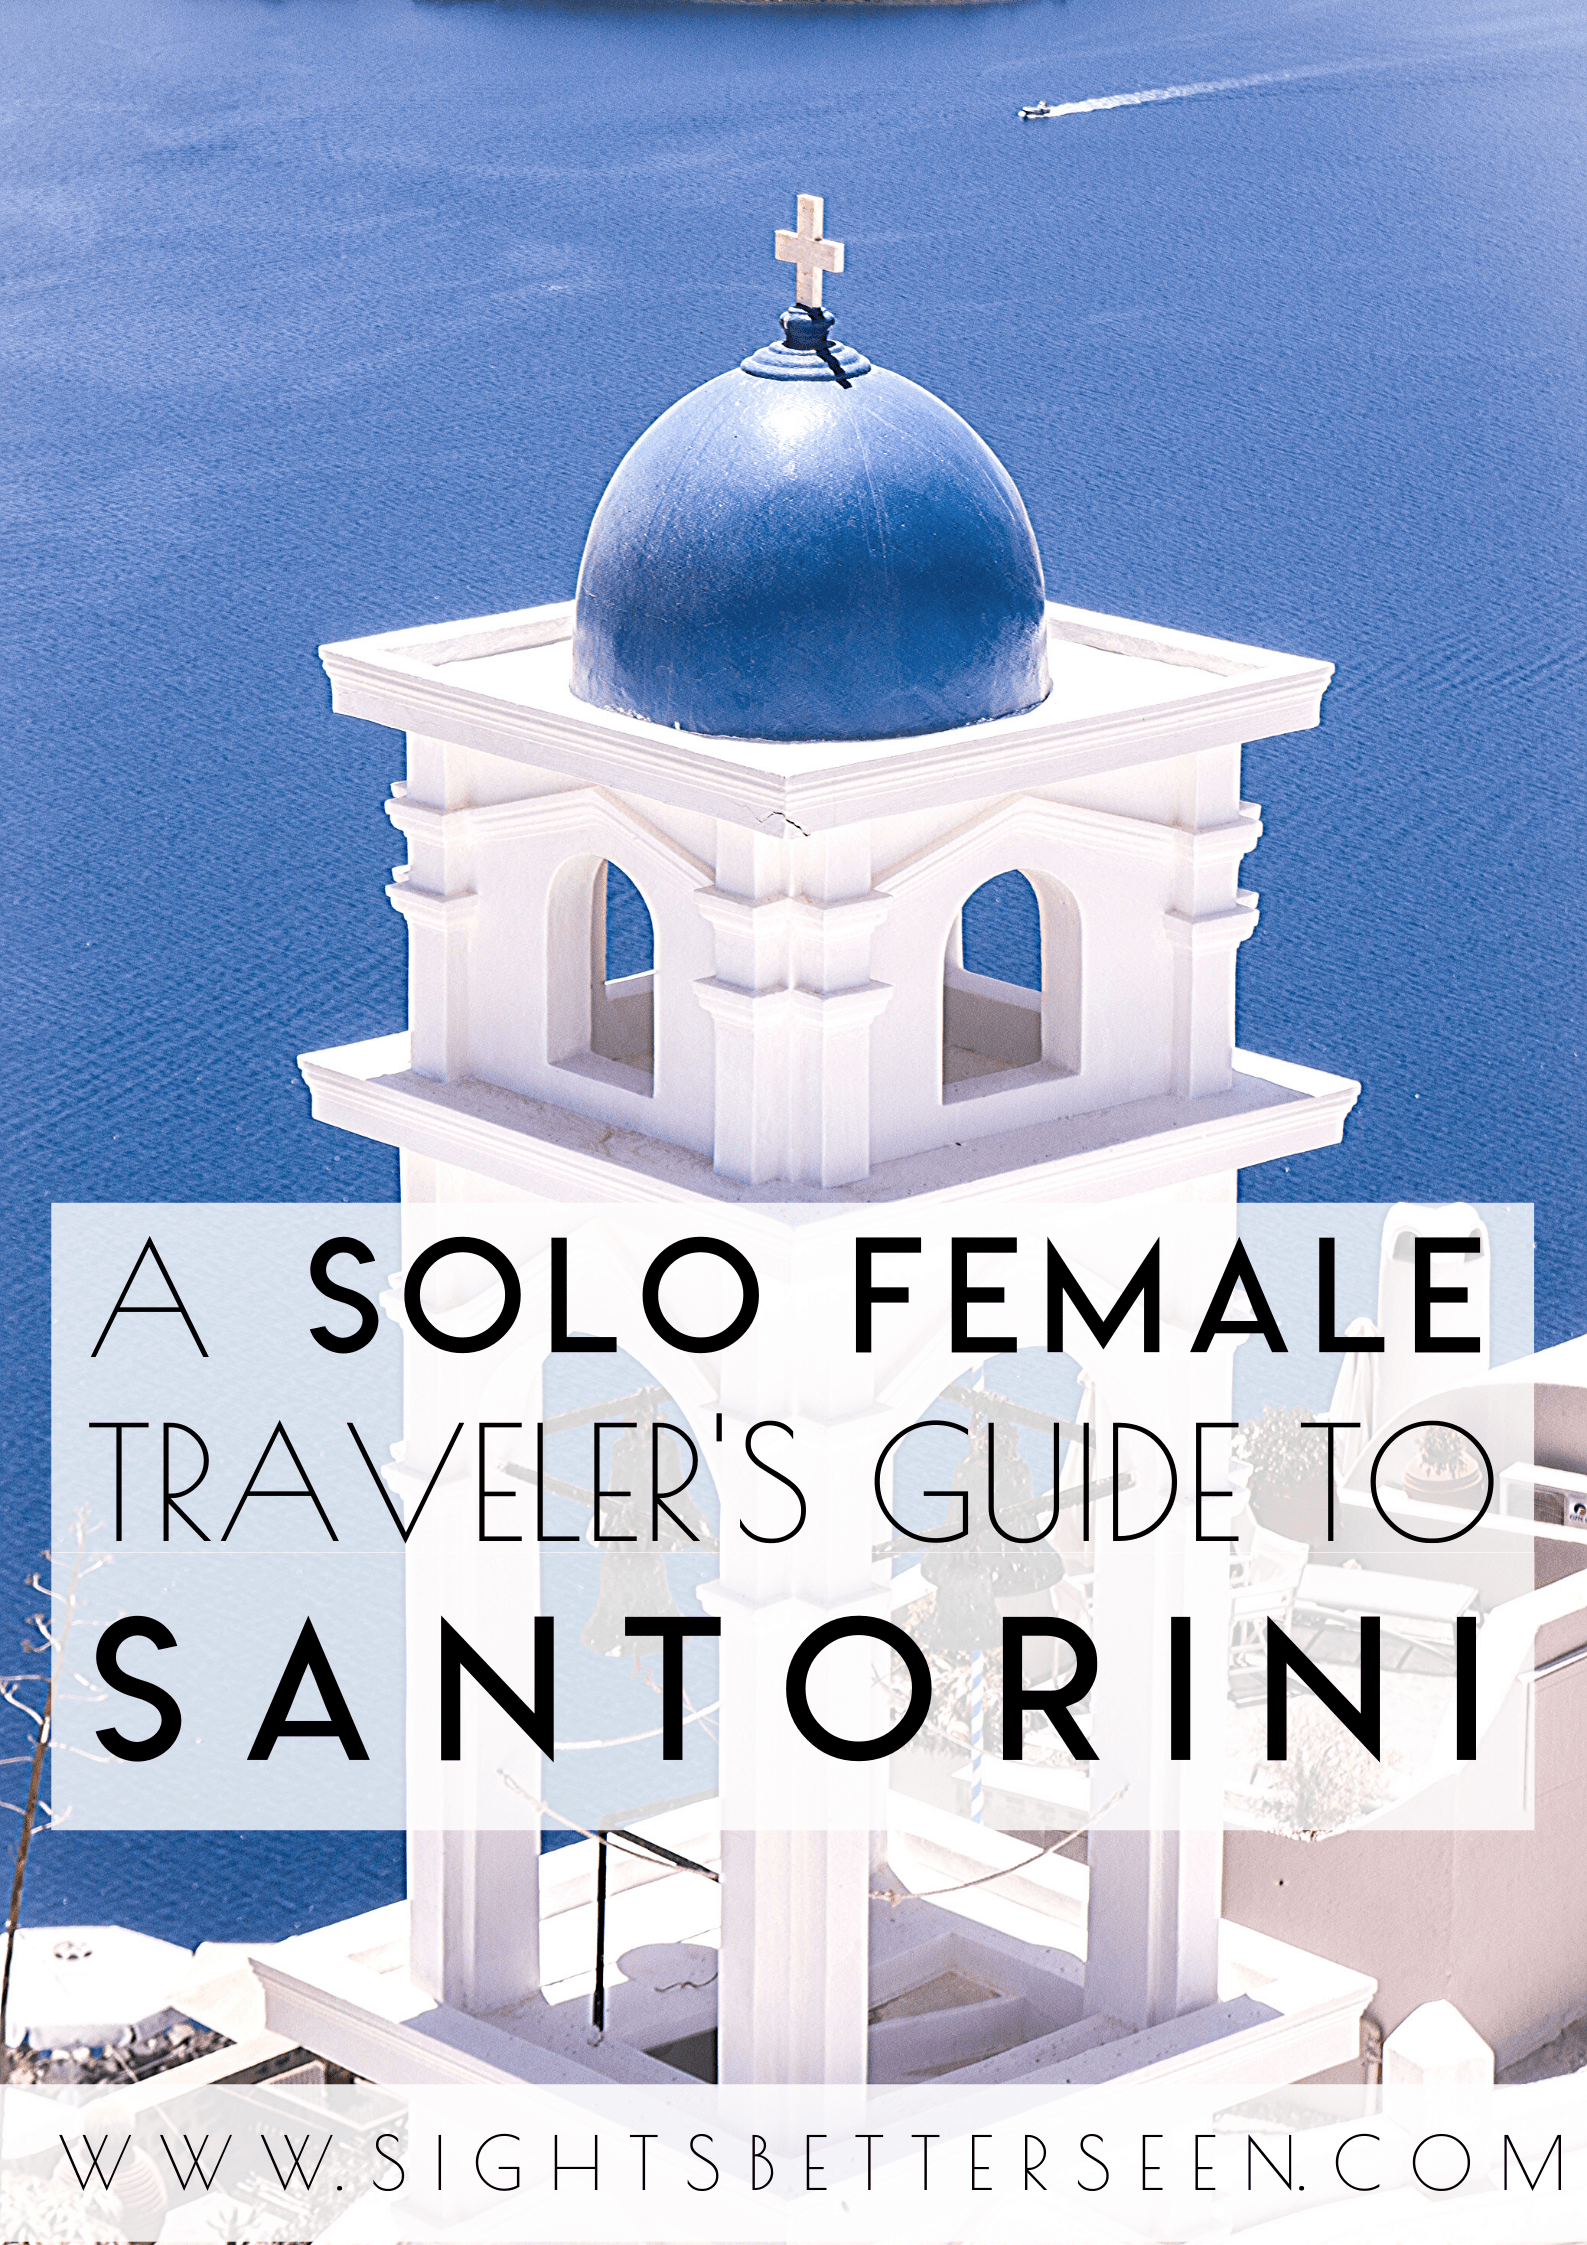 Santorini, Greece is a great destination for solo female travelers. It has beautiful views and blue domed churches and buildings. Learn the best tips and tricks for your perfect Santorini itinerary here!